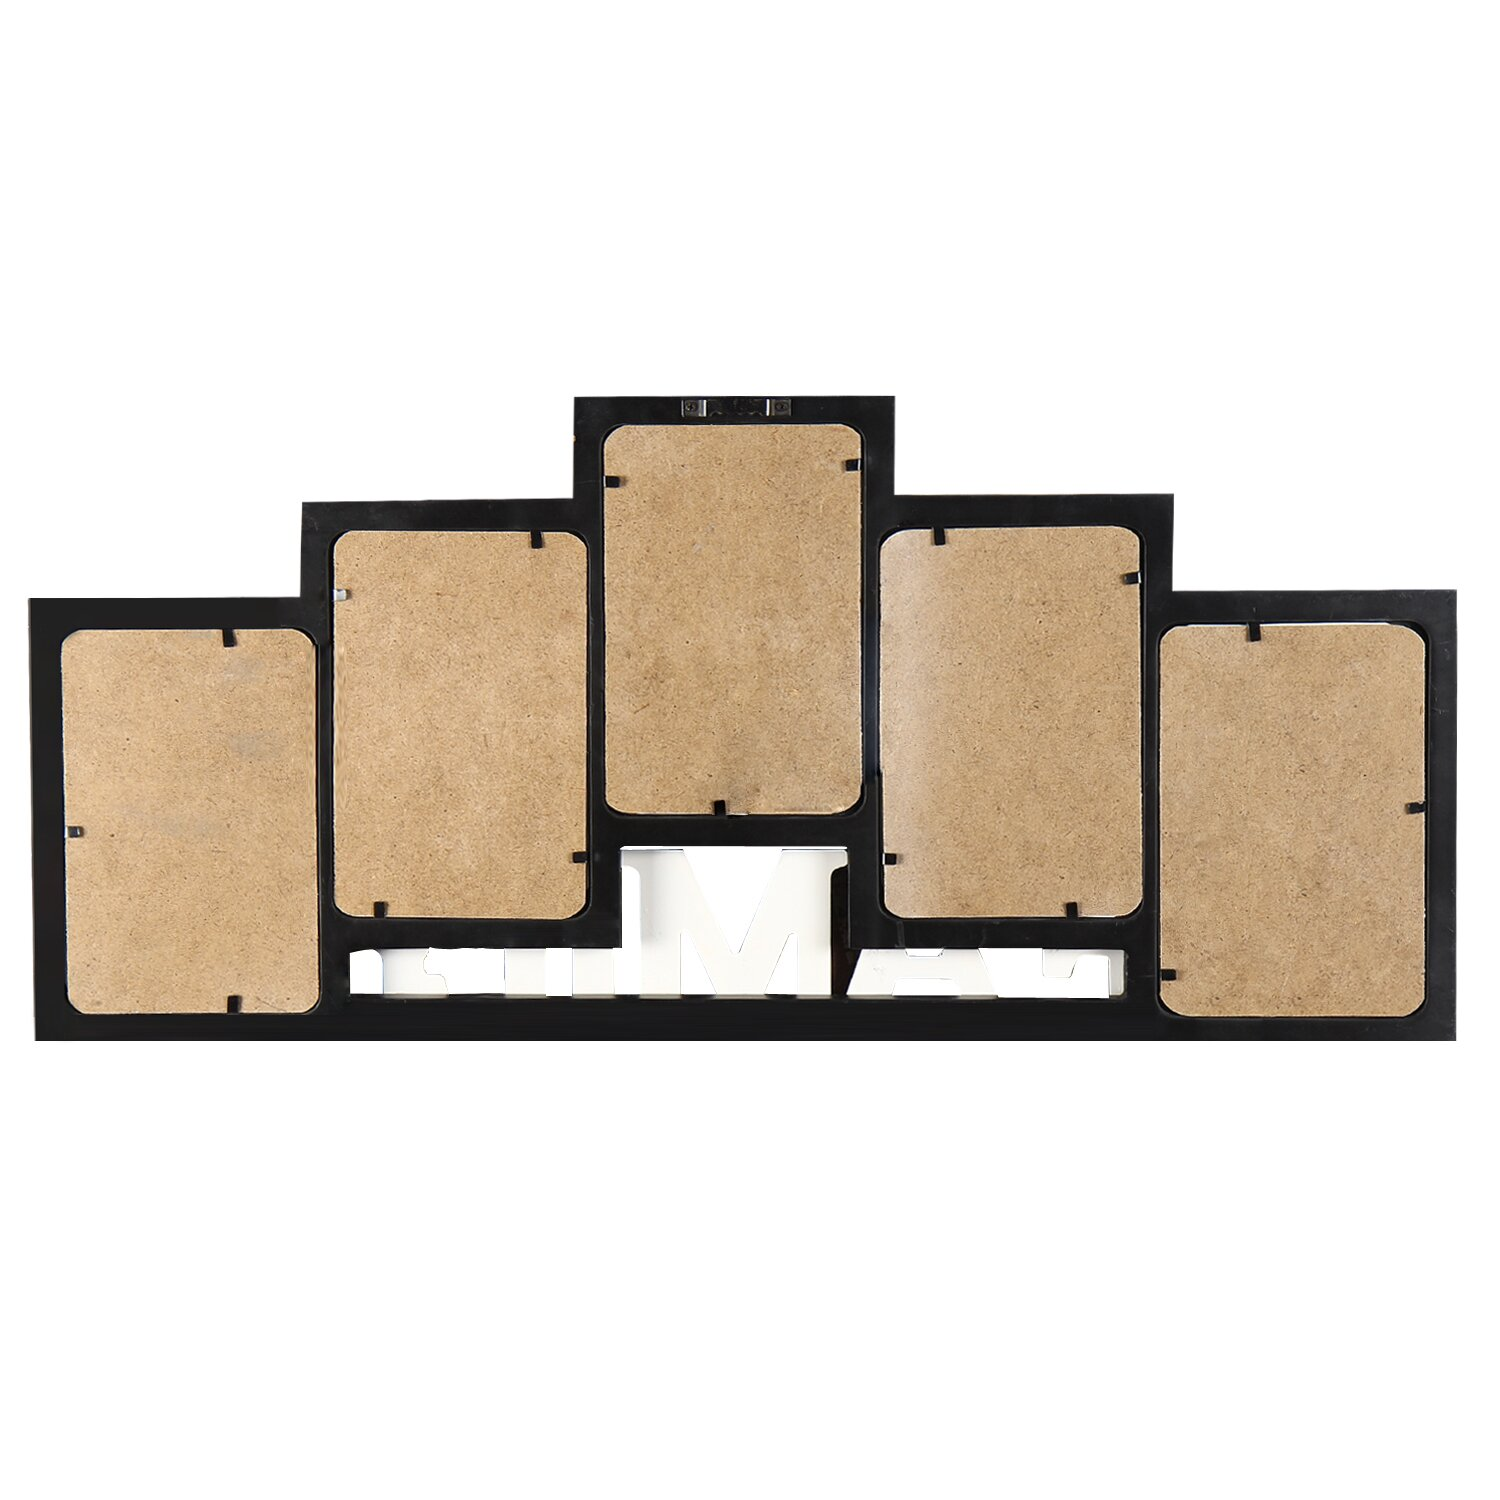 adecotrading 5 opening wooden photo collage wall hanging. Black Bedroom Furniture Sets. Home Design Ideas